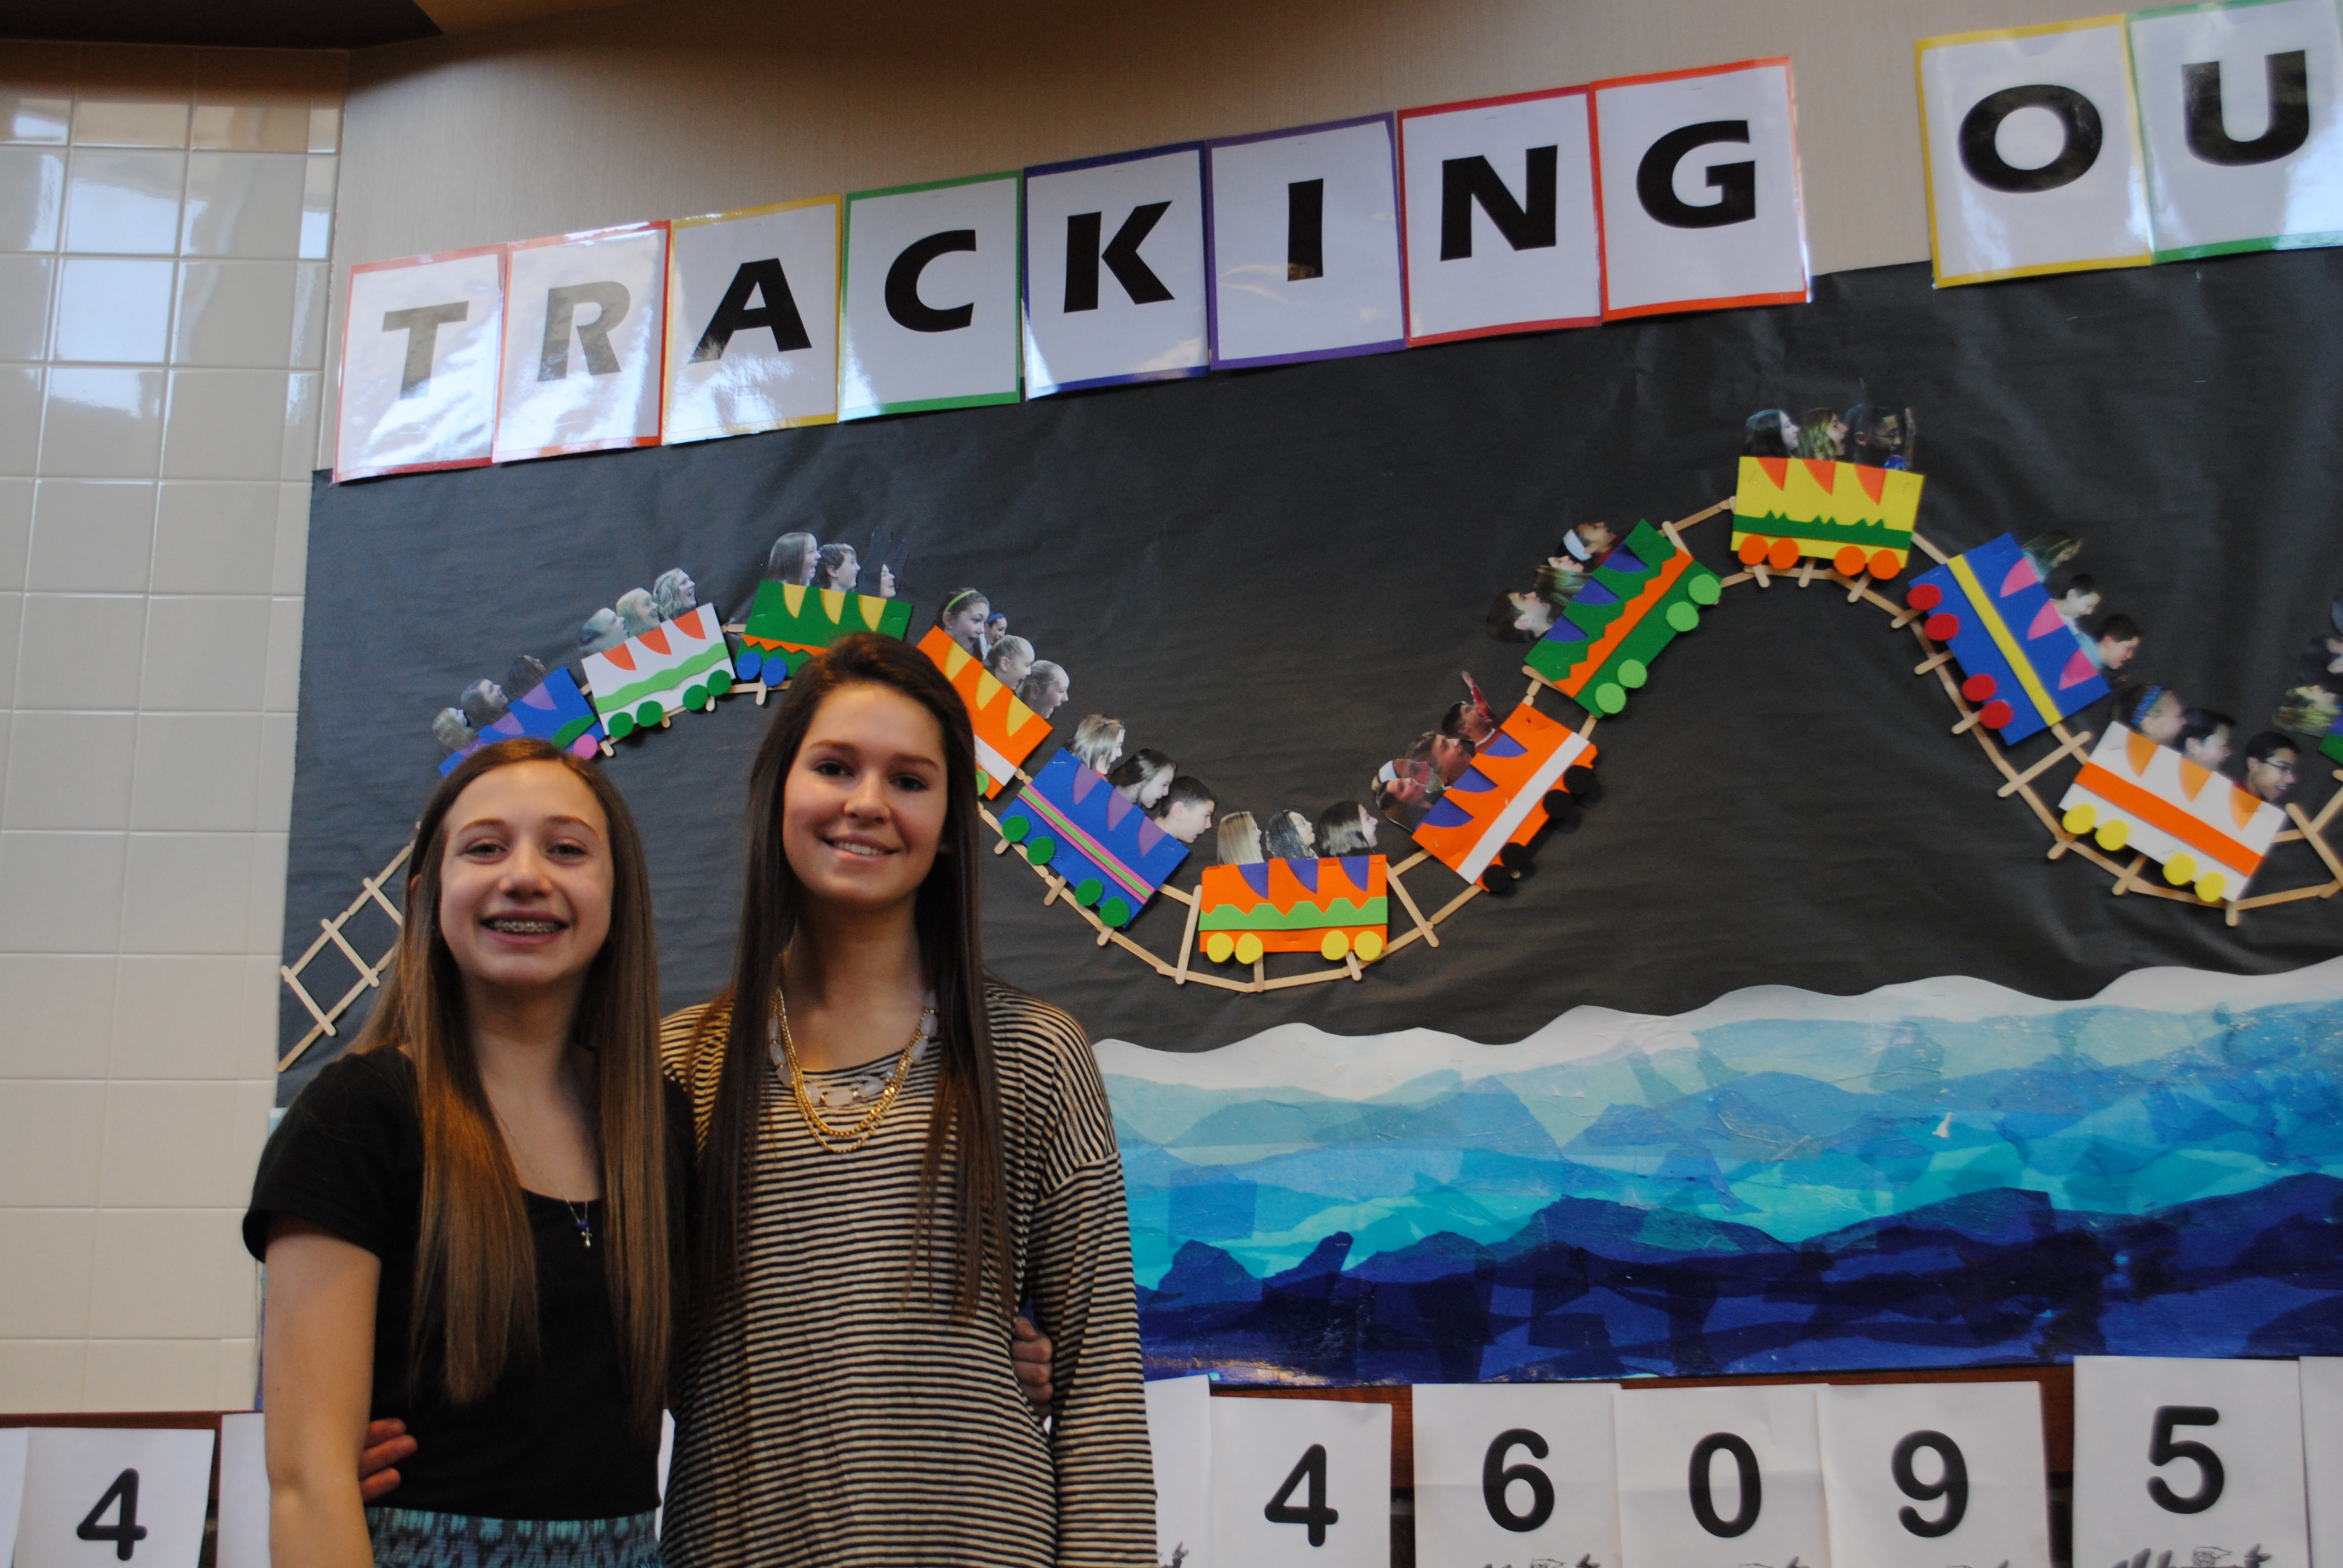 Ellie Avagian, left, and Kylie Kuchik were chosen to represent the science classes of Clay Middle School. The students in the science classes raised more than $4,000 for relief efforts related to Hurricane Sandy, which devastated parts of the east coast in 2012. Shown behind the students is a portion of the numeral Pi. (Staff photo)